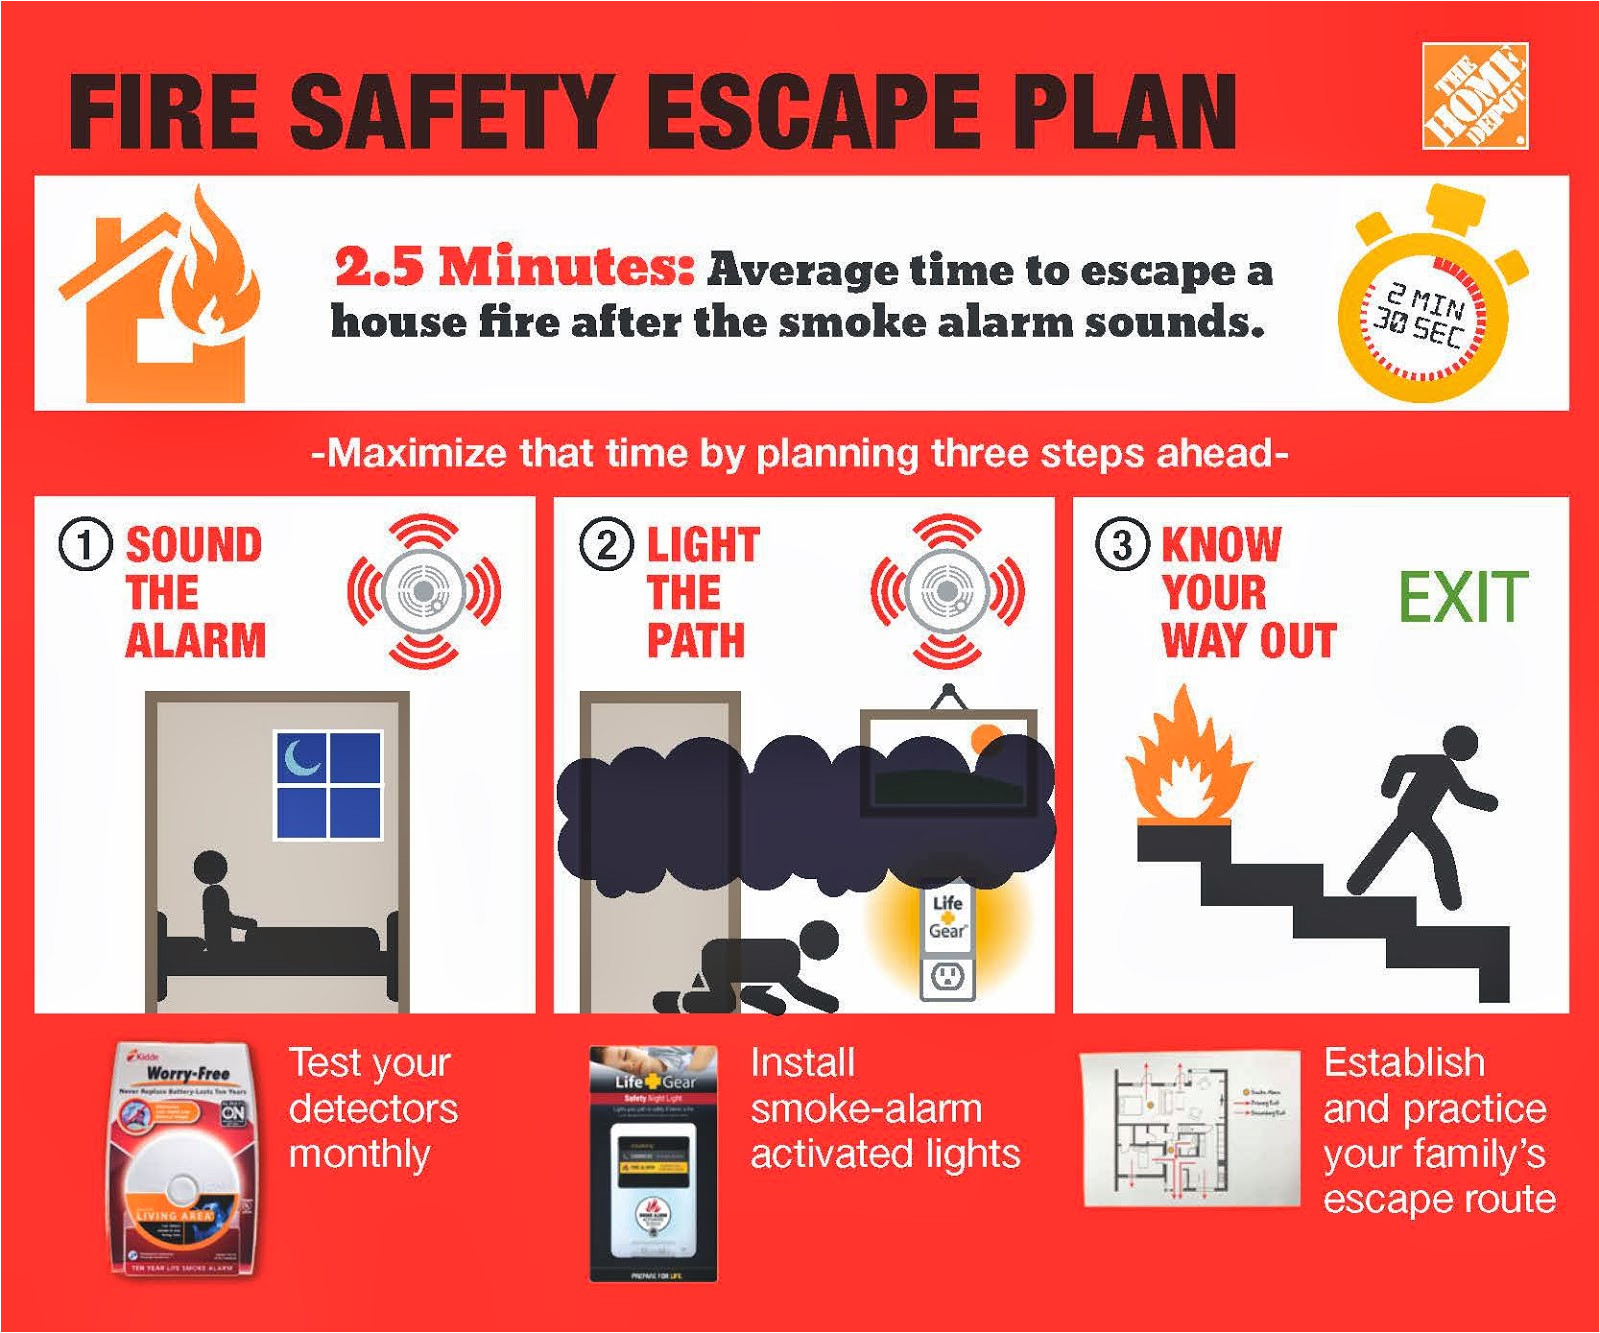 stay safe with fire safety tips from